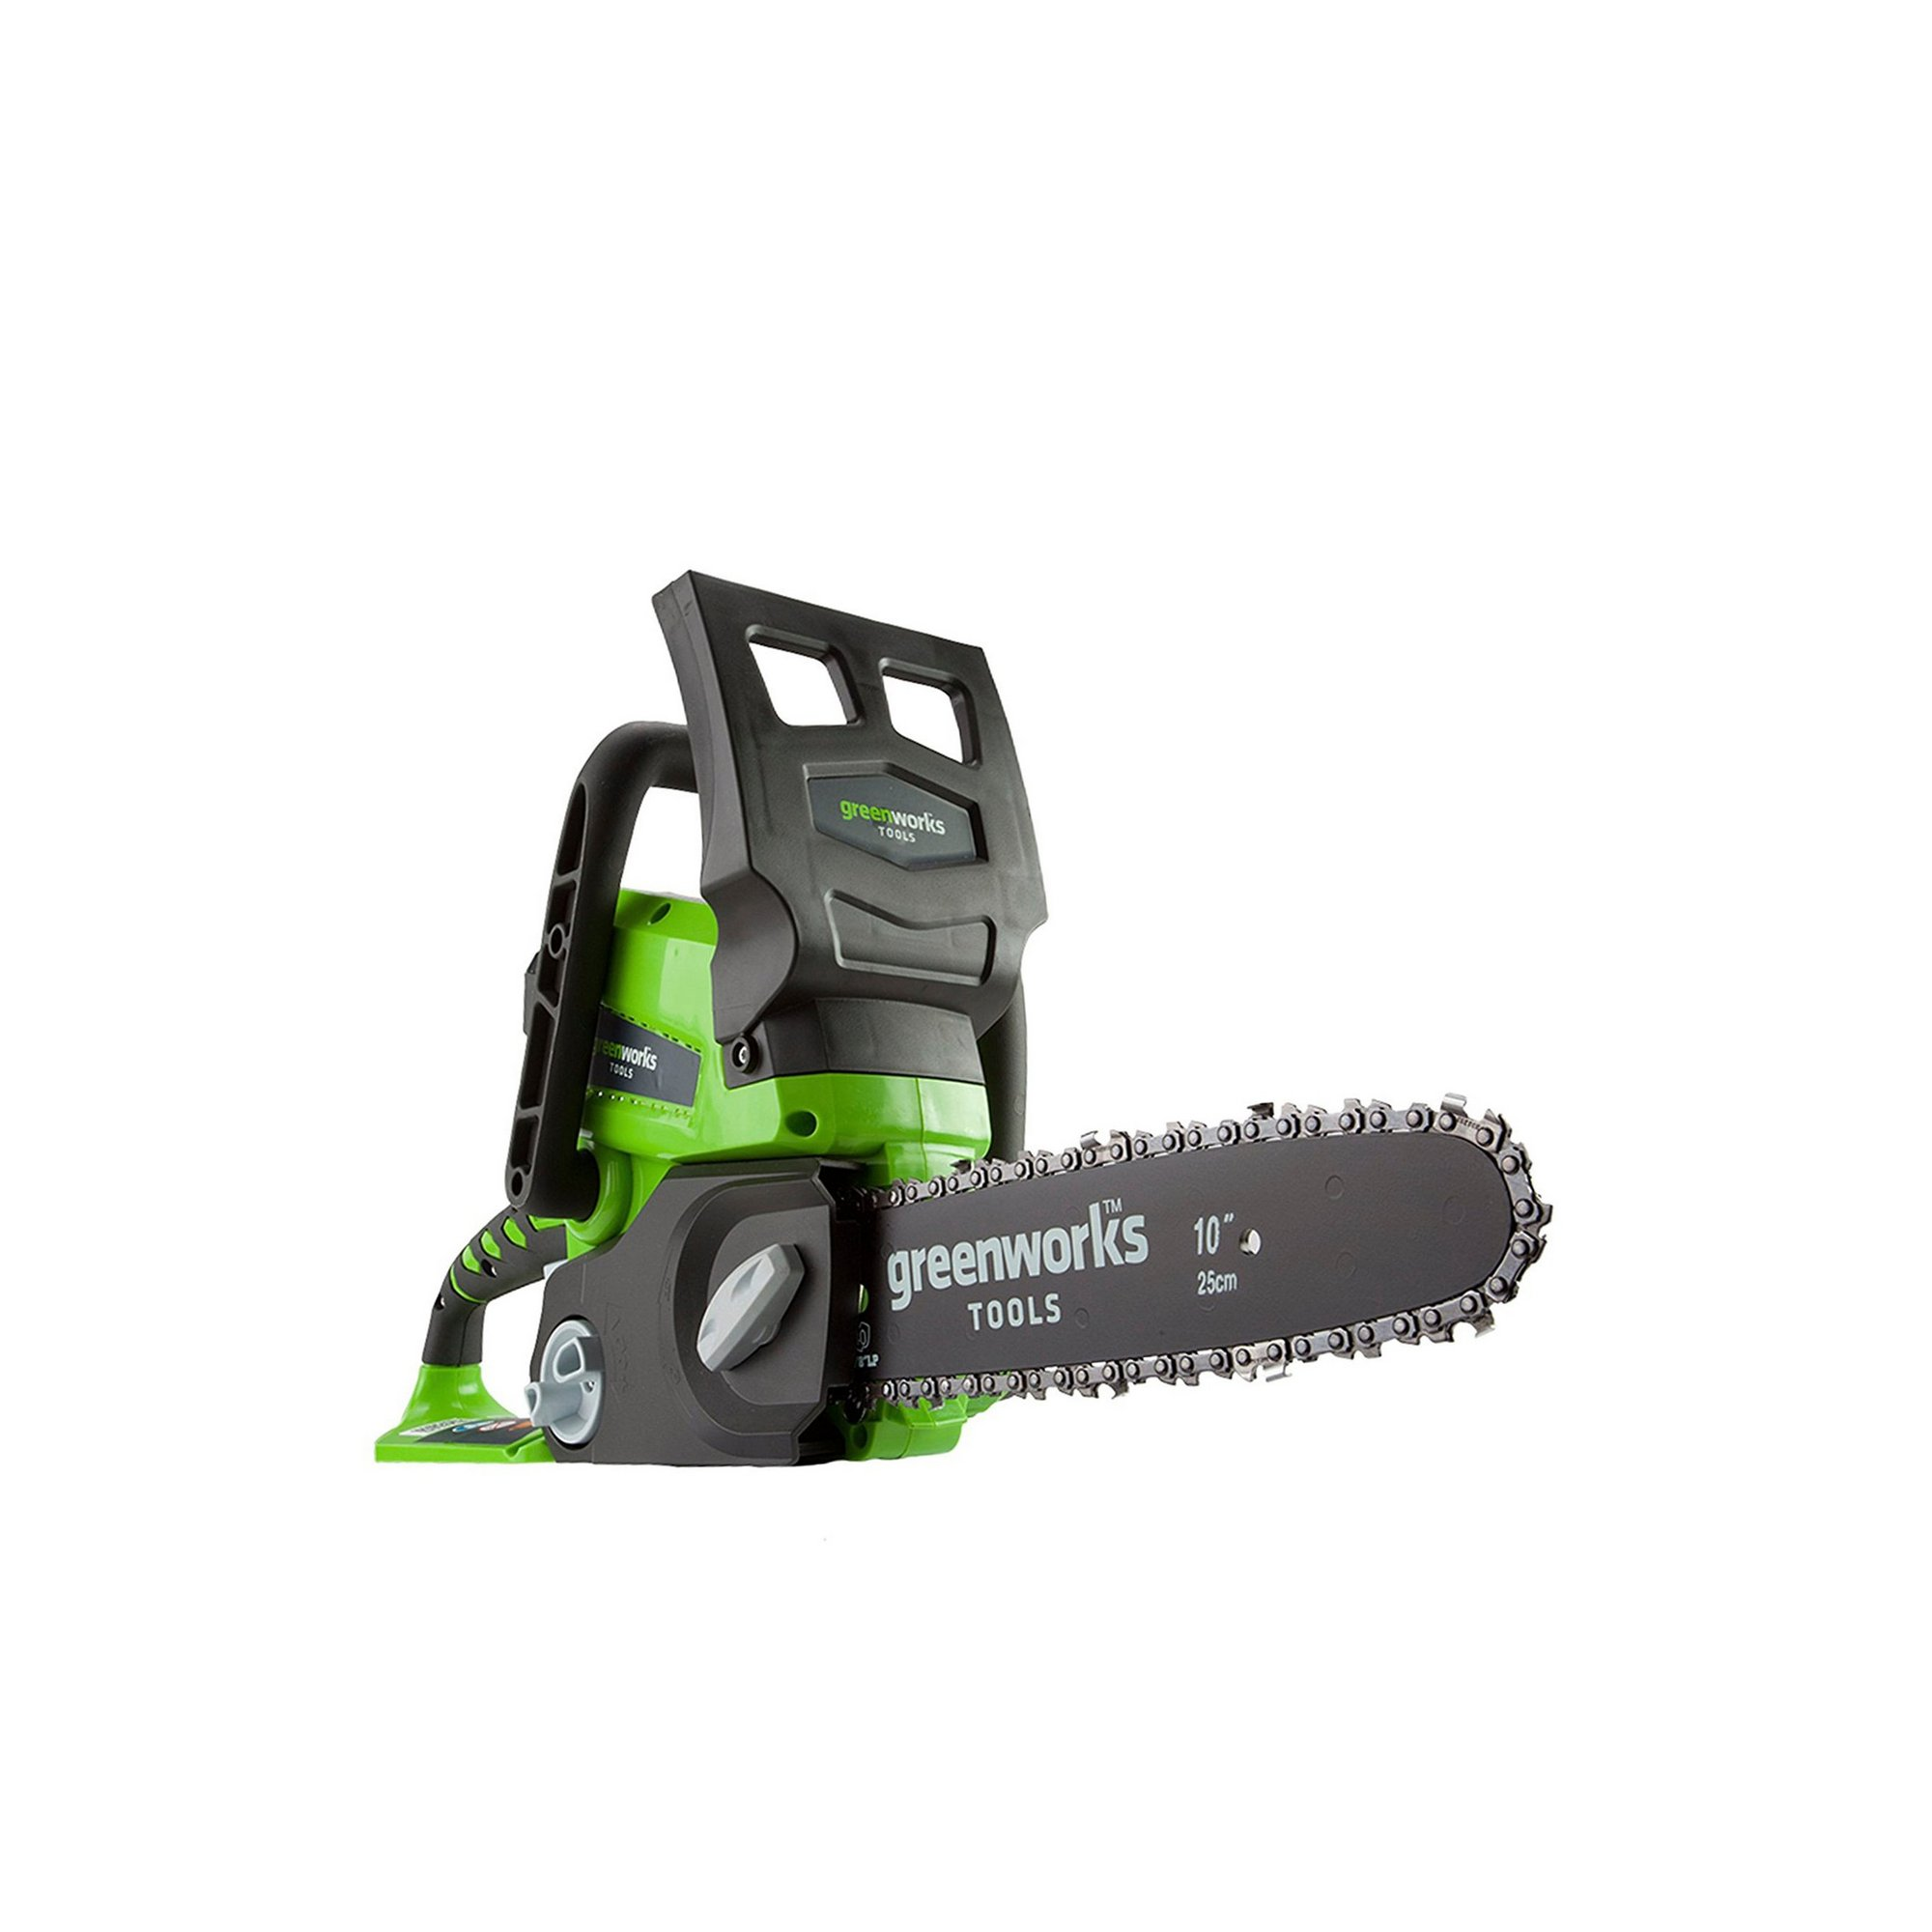 Image of Greenworks 25cm Cordless Chainsaw (Tool Only)